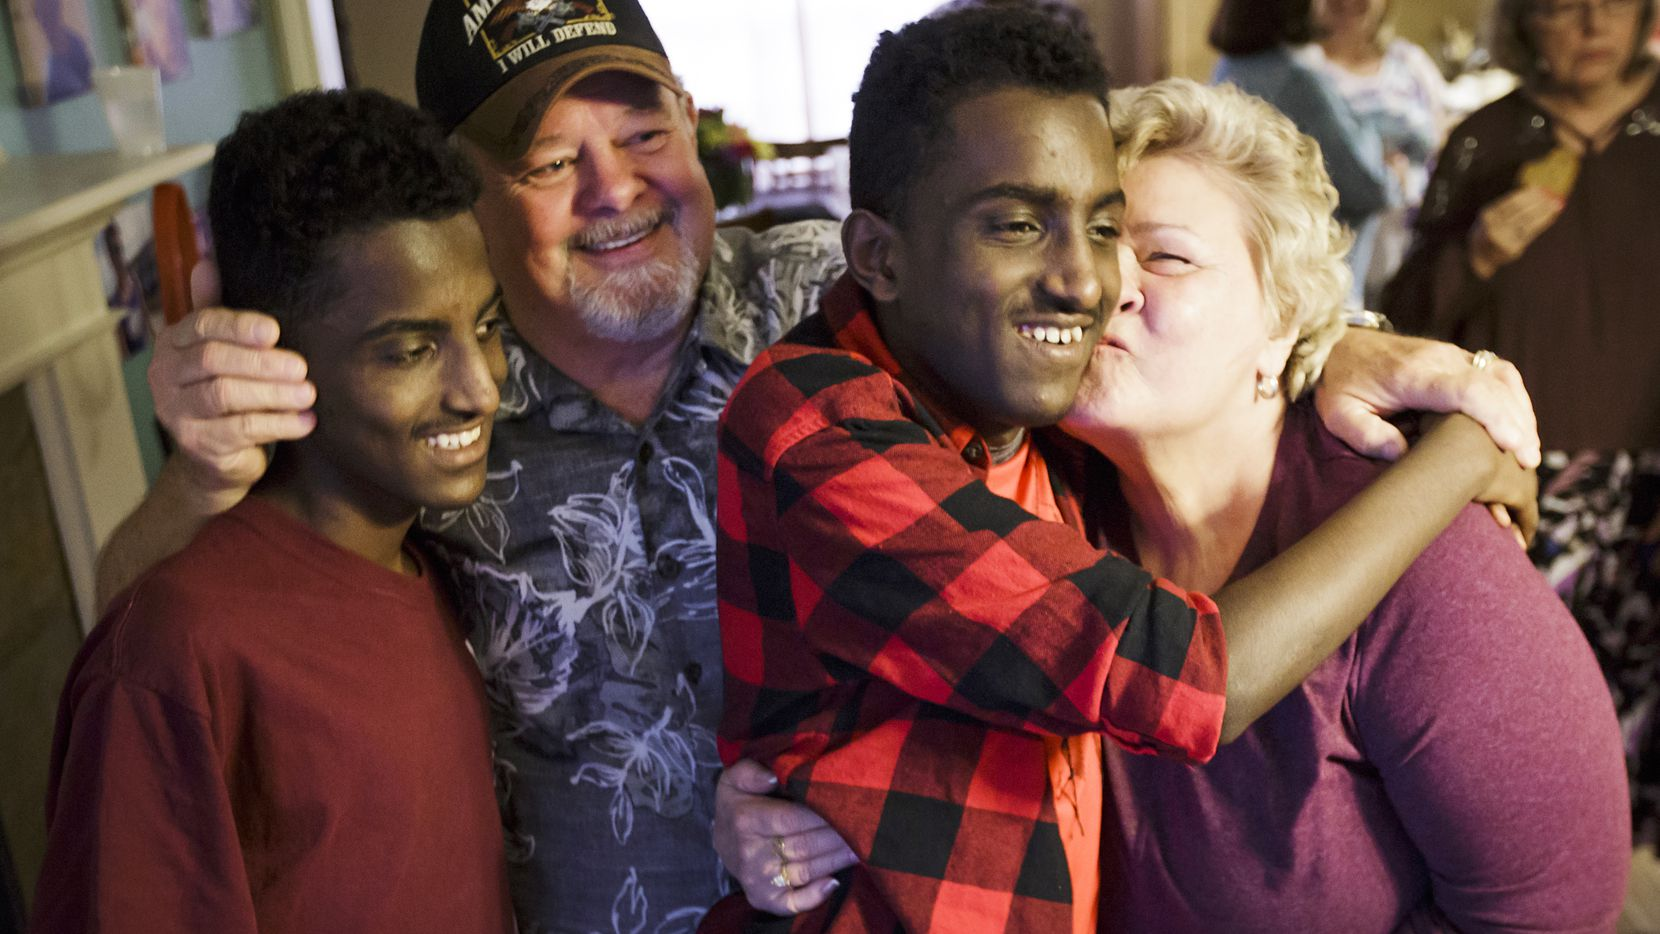 Marcos Bogale (center) gets a kiss from Linda Keylon as his twin Tamirat gets a hug from Gary Keylon  during a going away party for the twins on Monday, April 24, 2017, in Plano. The Ethiopian twins will leave Texas after  traveling to the state in December for surgery to treat their severe scoliosis. The brothers have met FC Dallas players, enrolled in high school and now the community plans to host two fundraisers before they go back home to Addis Ababa, Ehtiopia on Wednesday.  The Keylon's are the parents of the boys' host family. (Smiley N. Pool/The Dallas Morning News)